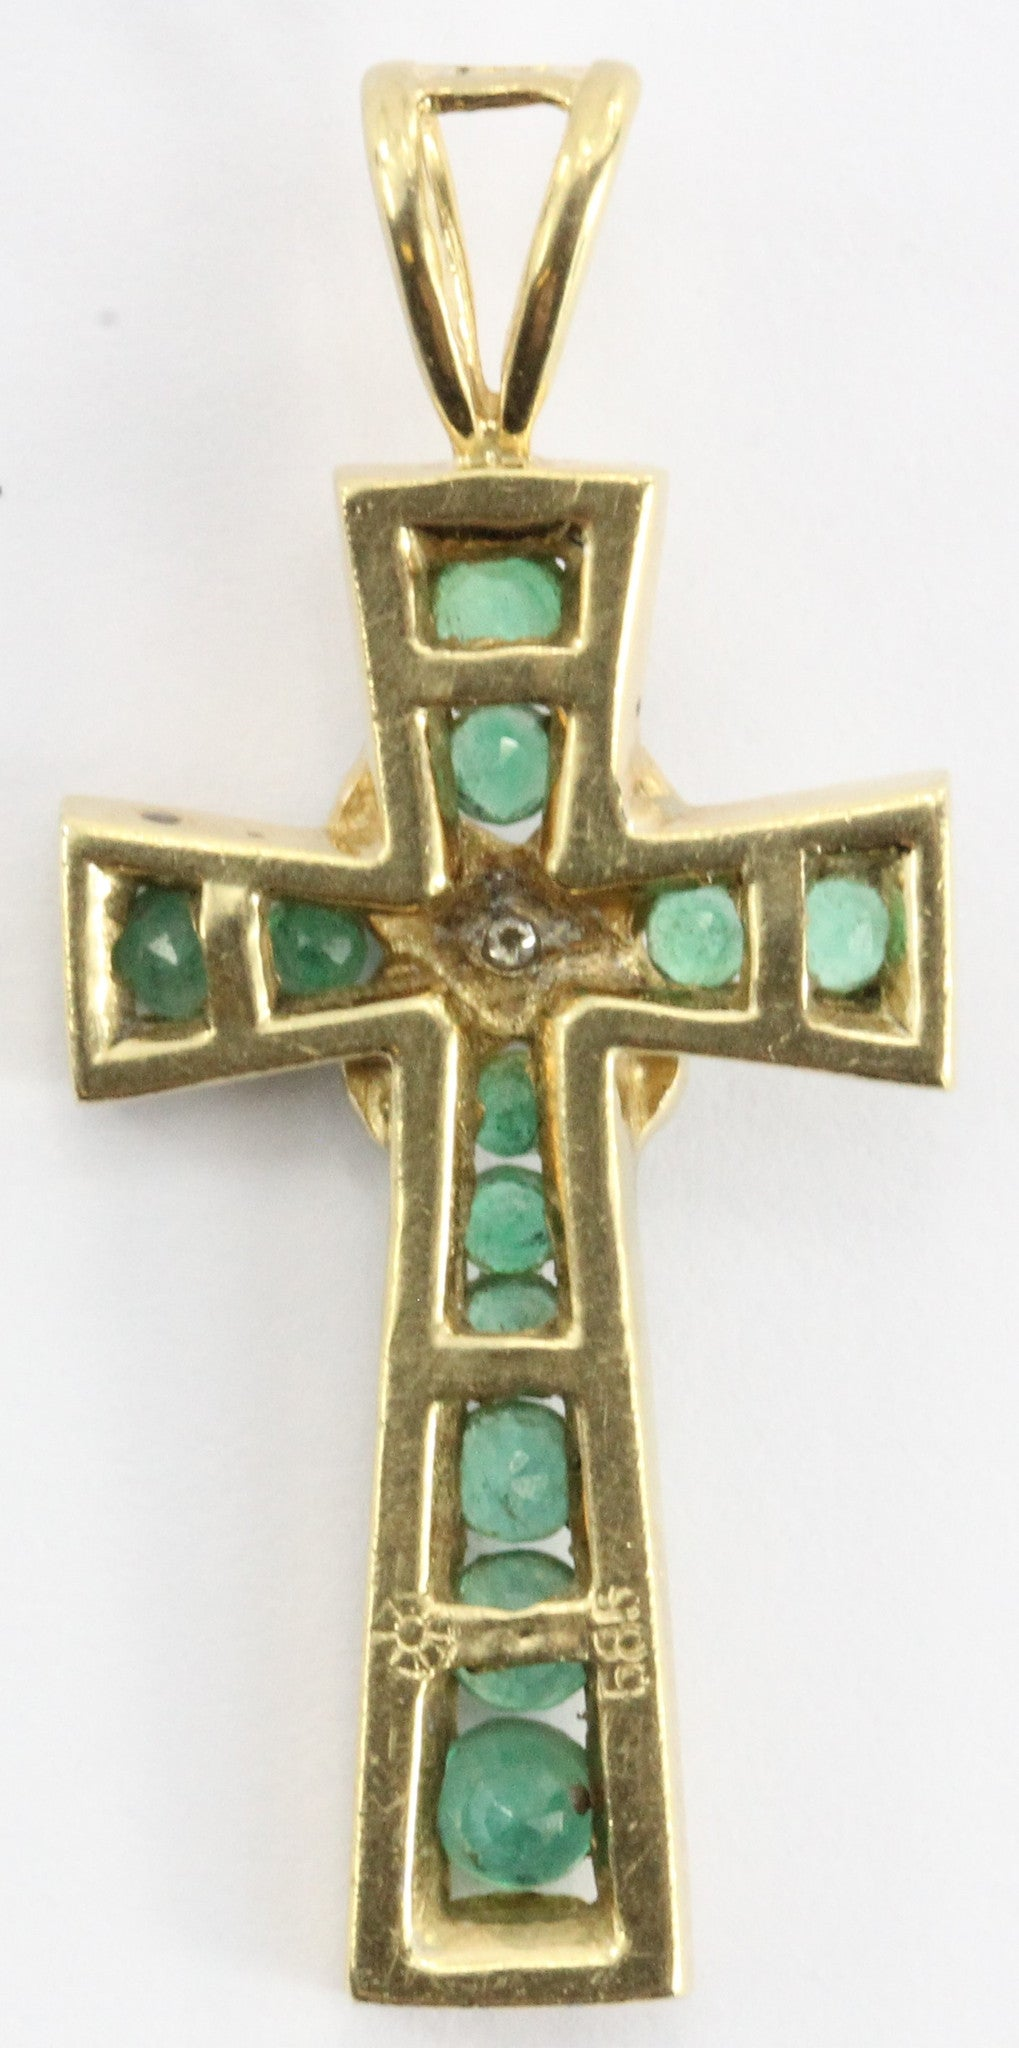 Vintage 14K Gold Columbian Emerald & Diamond Cross Pendant - Queen May